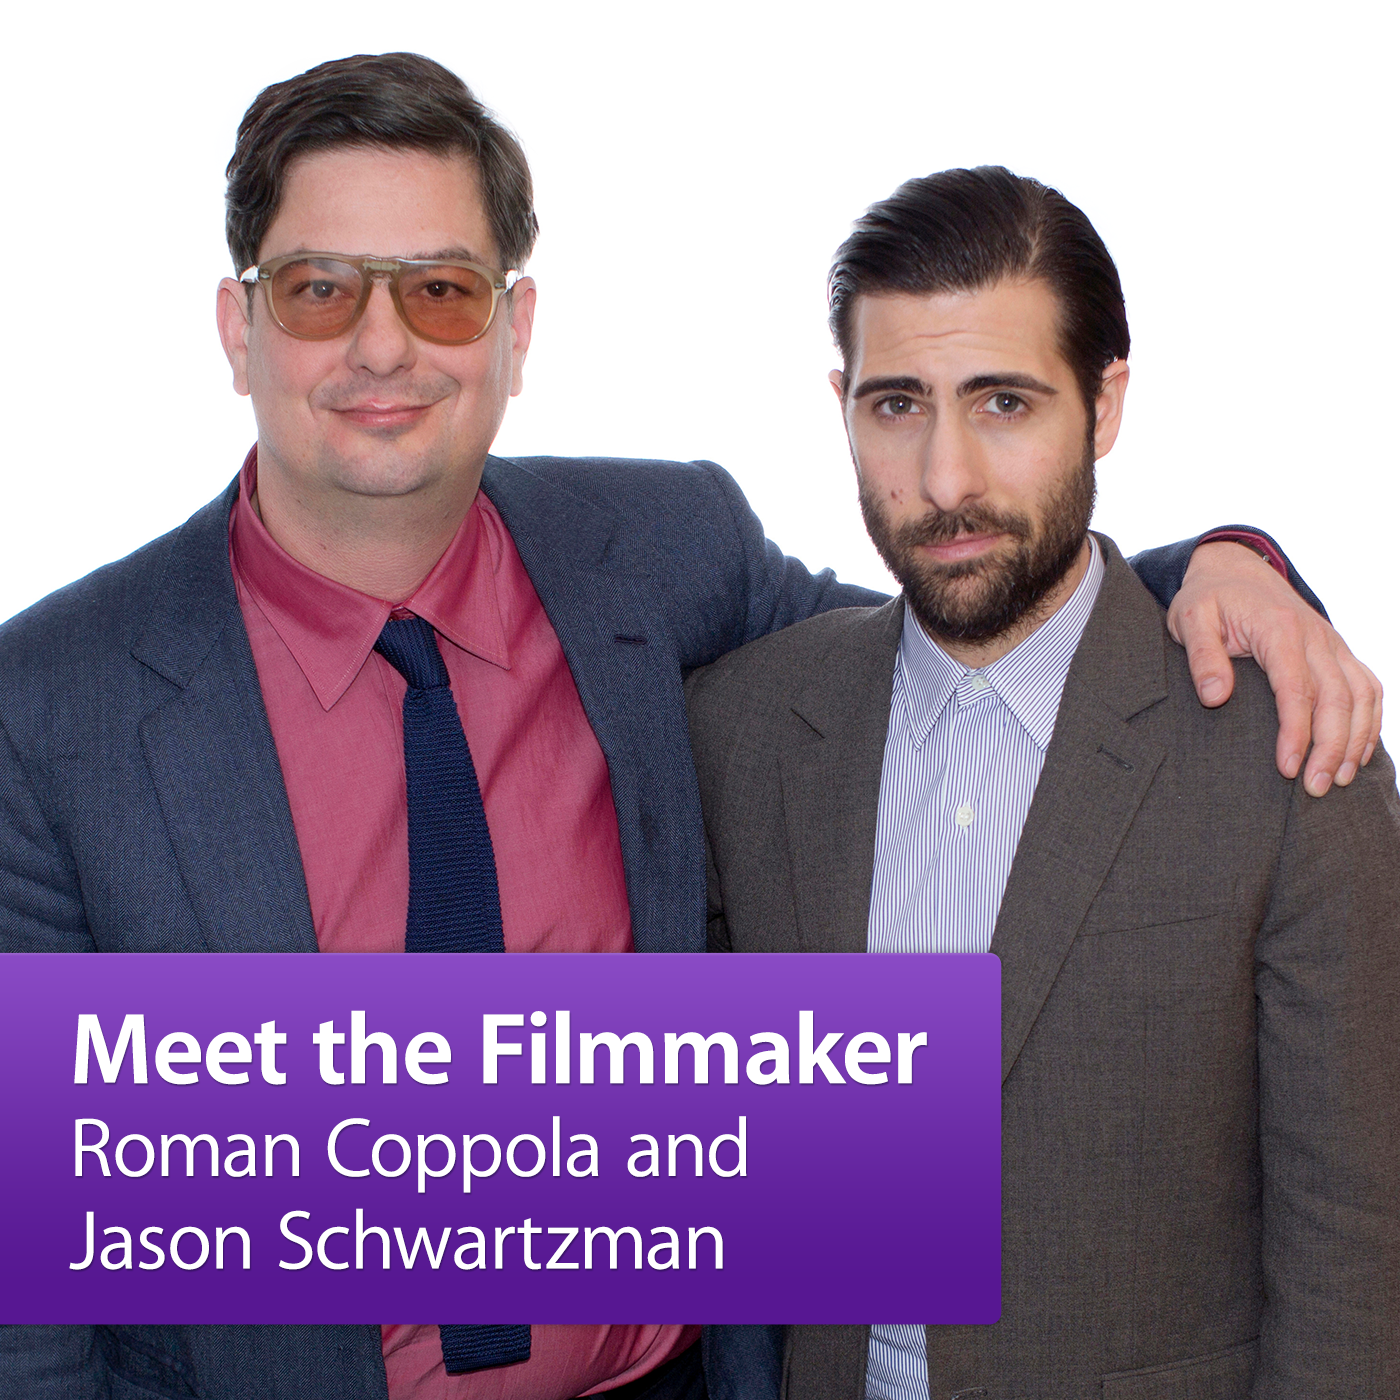 Roman Coppola and Jason Schwartzman: Meet the Filmmaker